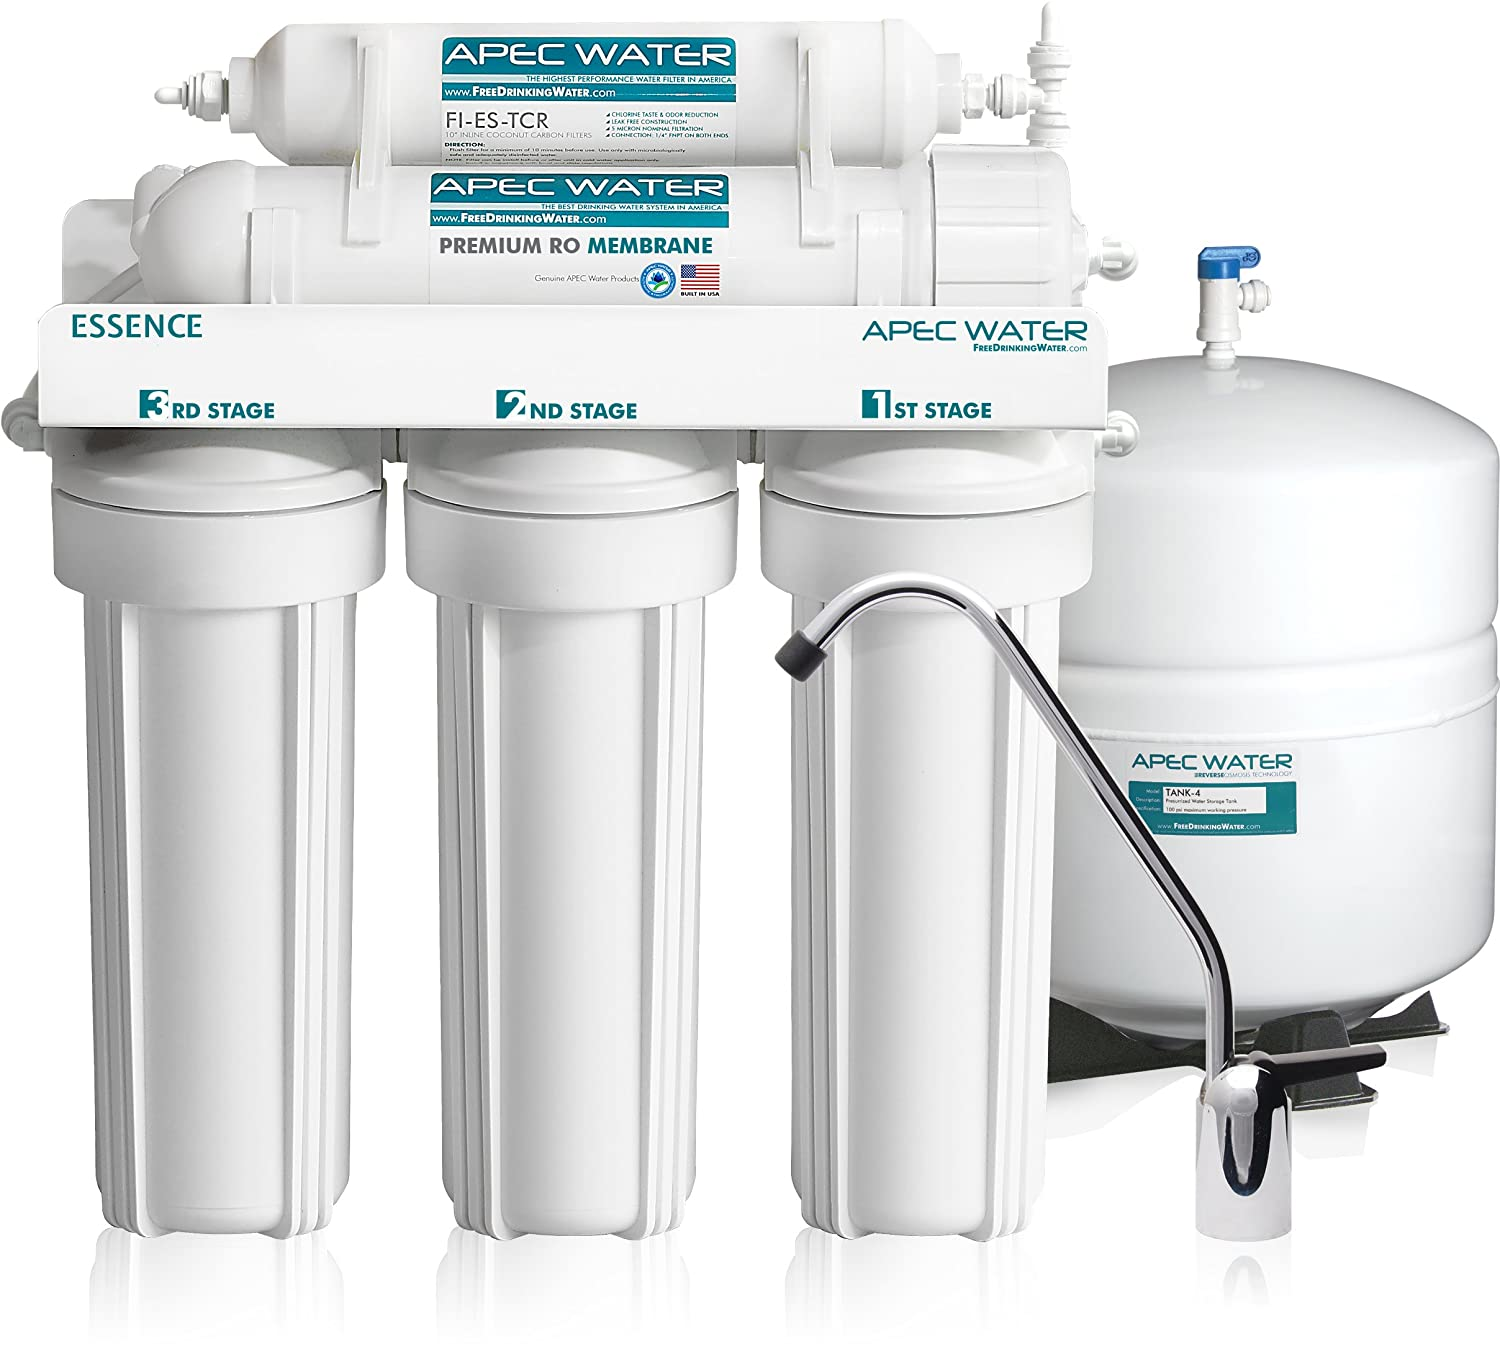 APEC Water 5-Stage Reverse Osmosis Filter System